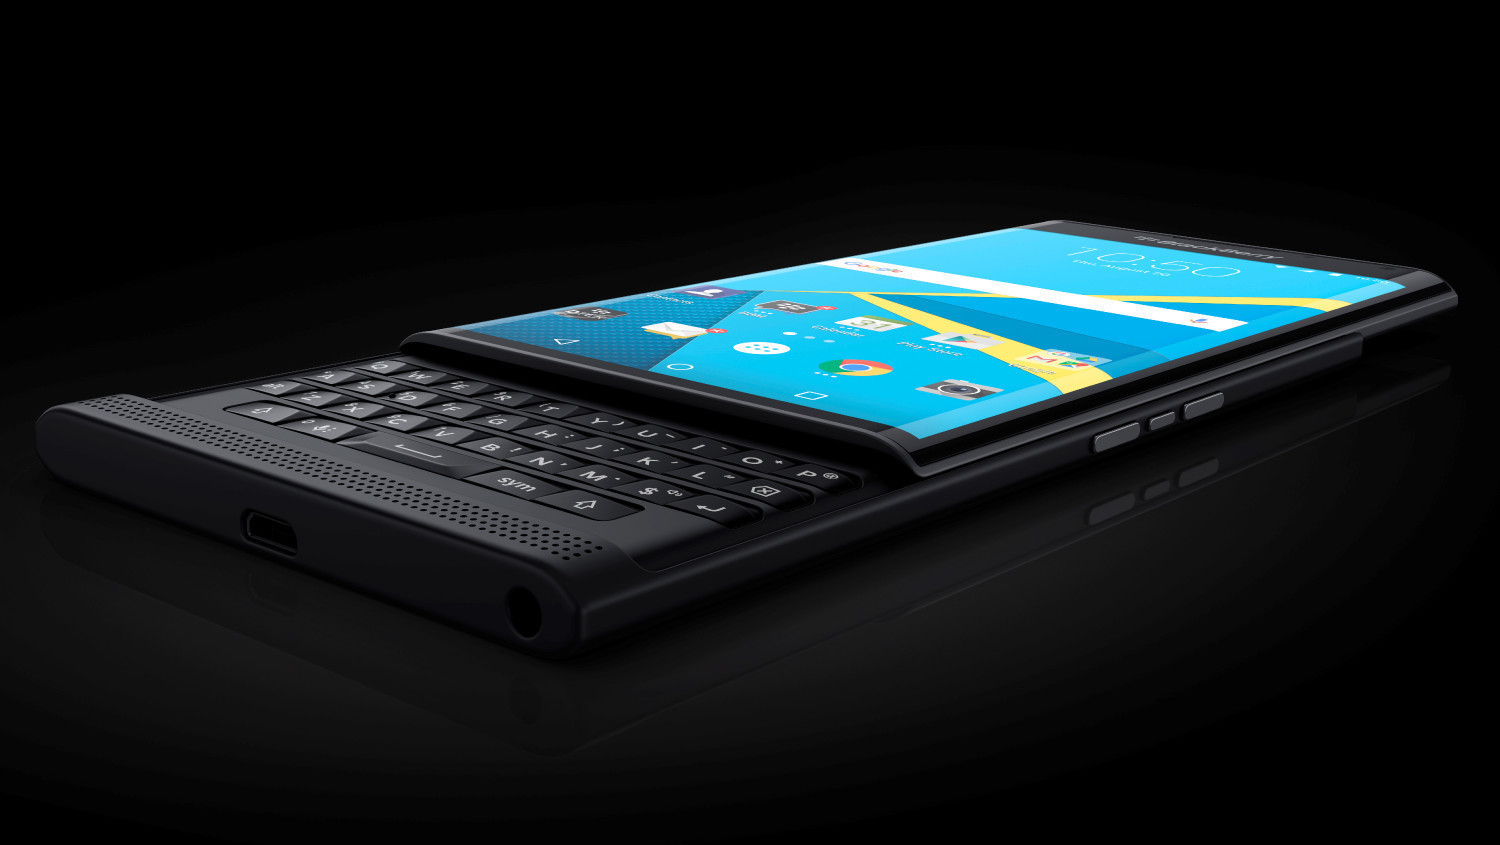 BlackBerry Priv will not get Android 7.0 Nougat update